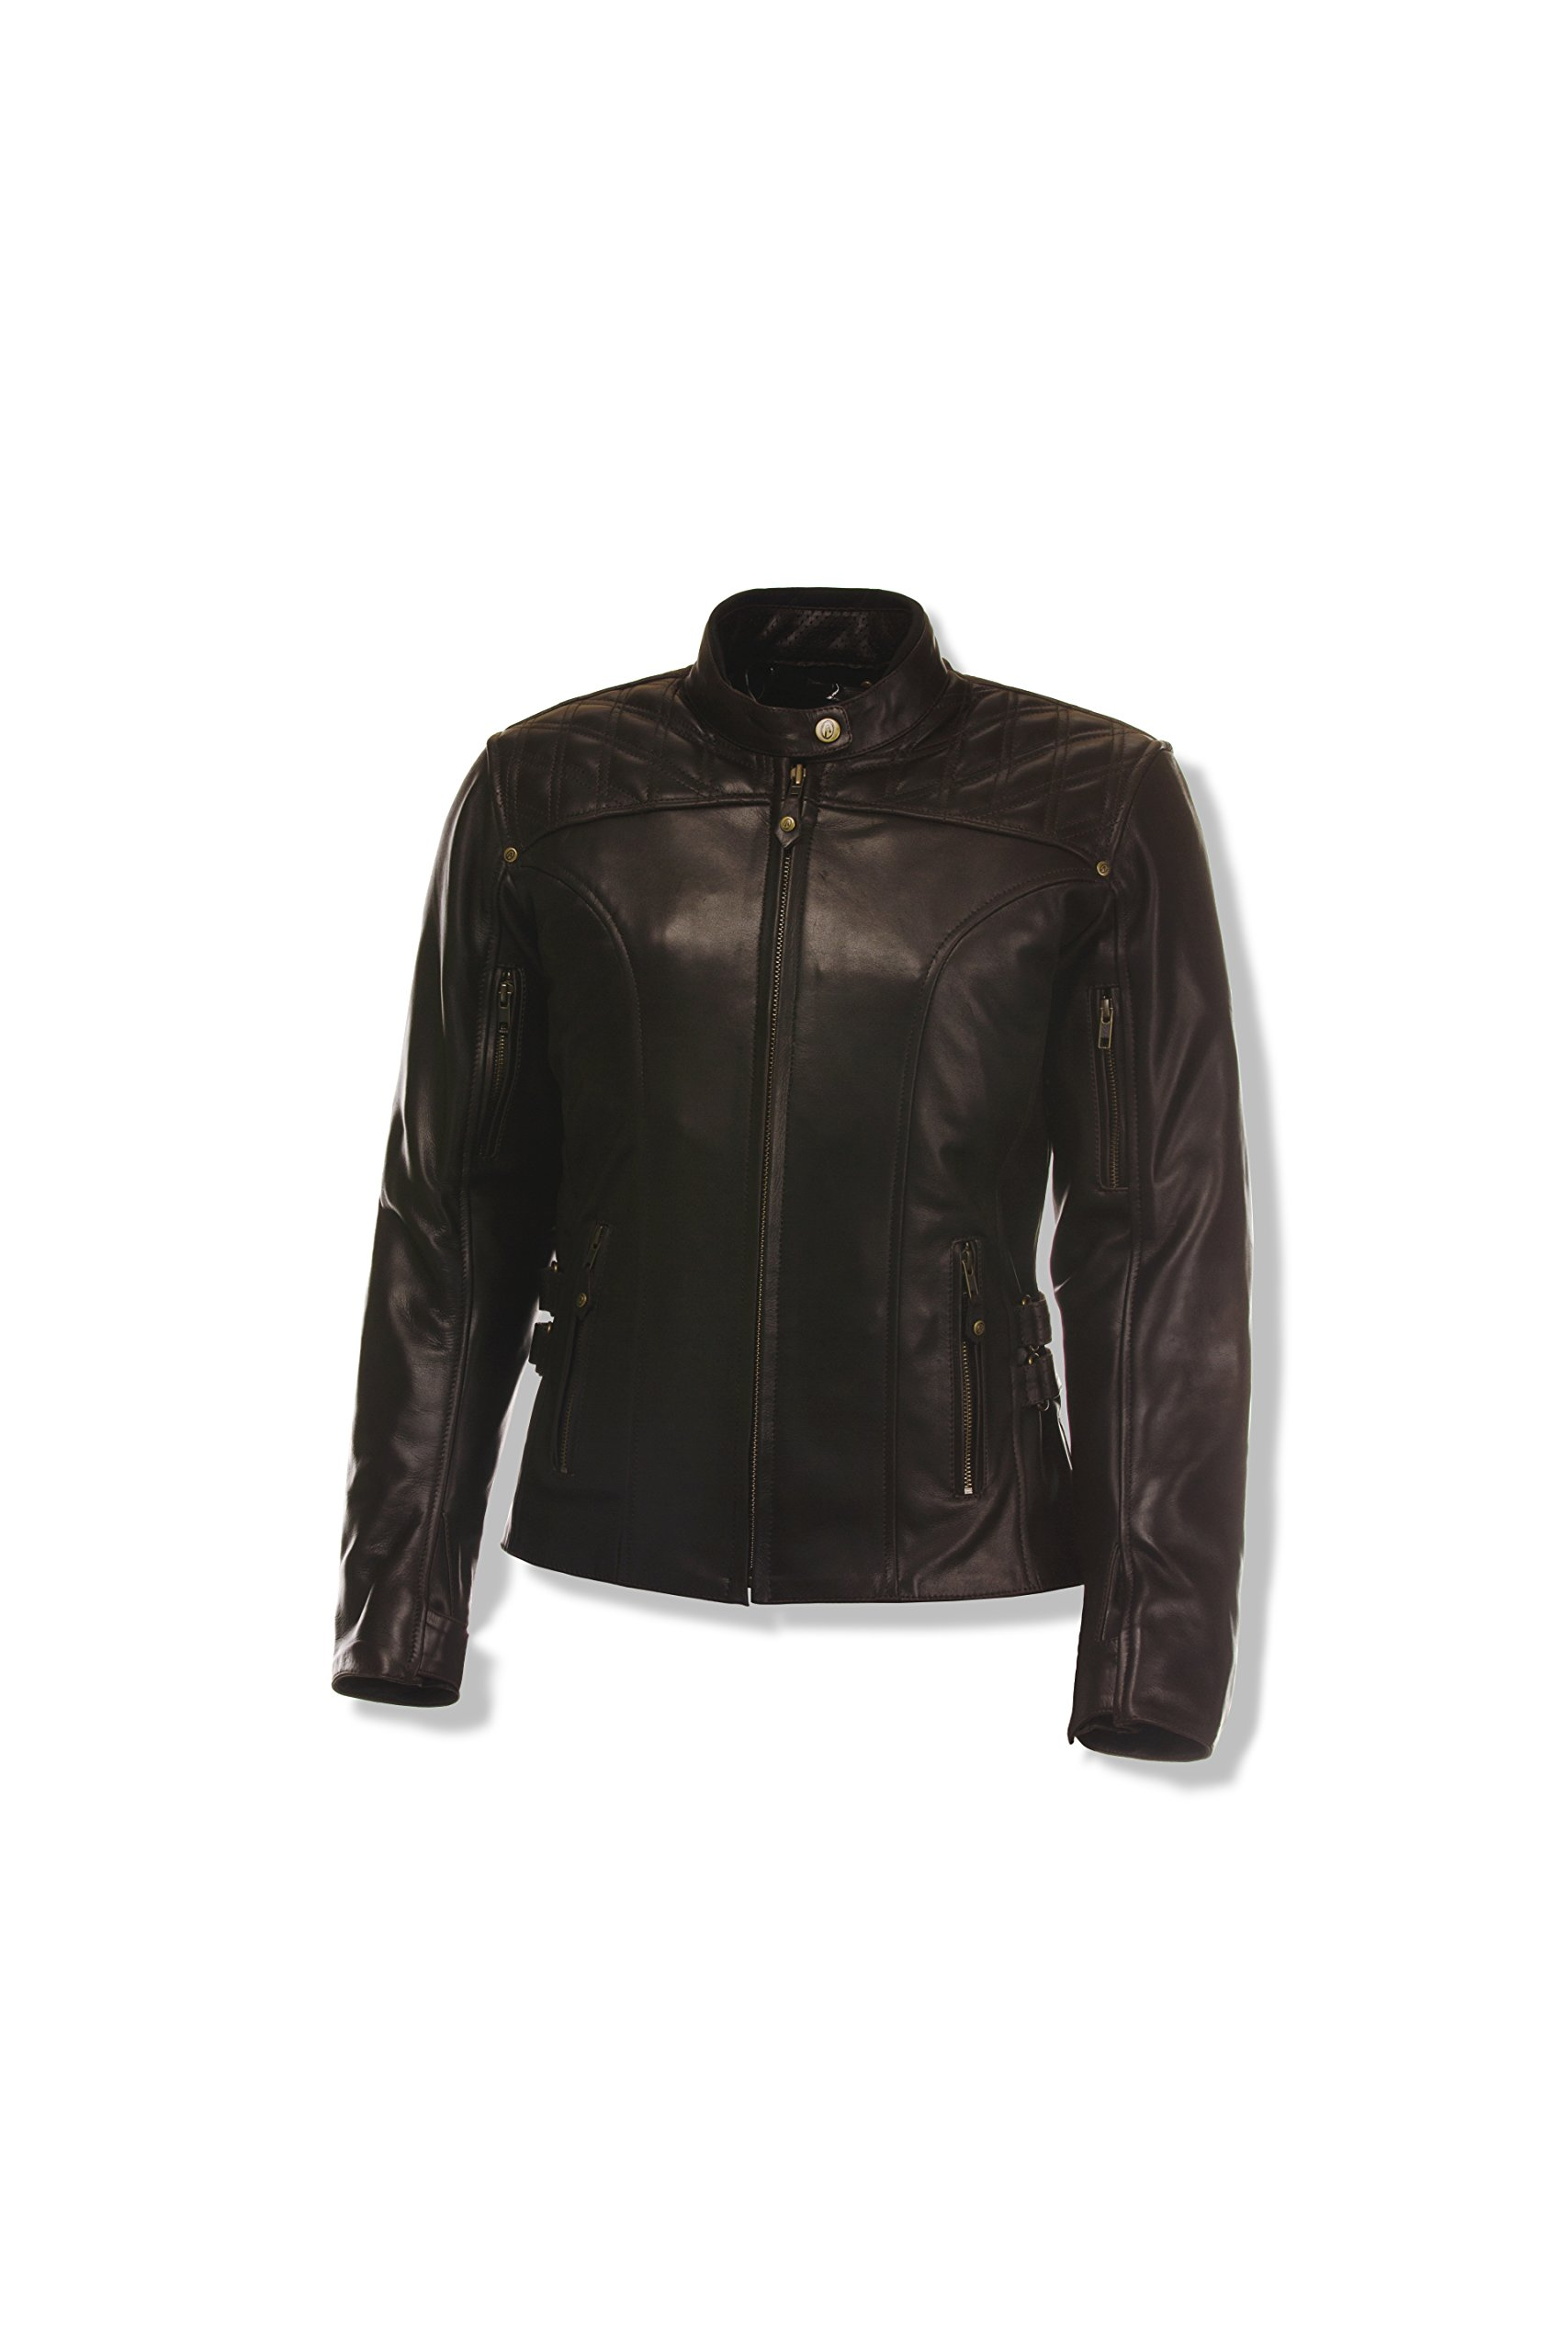 Olympia Sports Women's Janis Leather Jacket (Brown, X-Small)